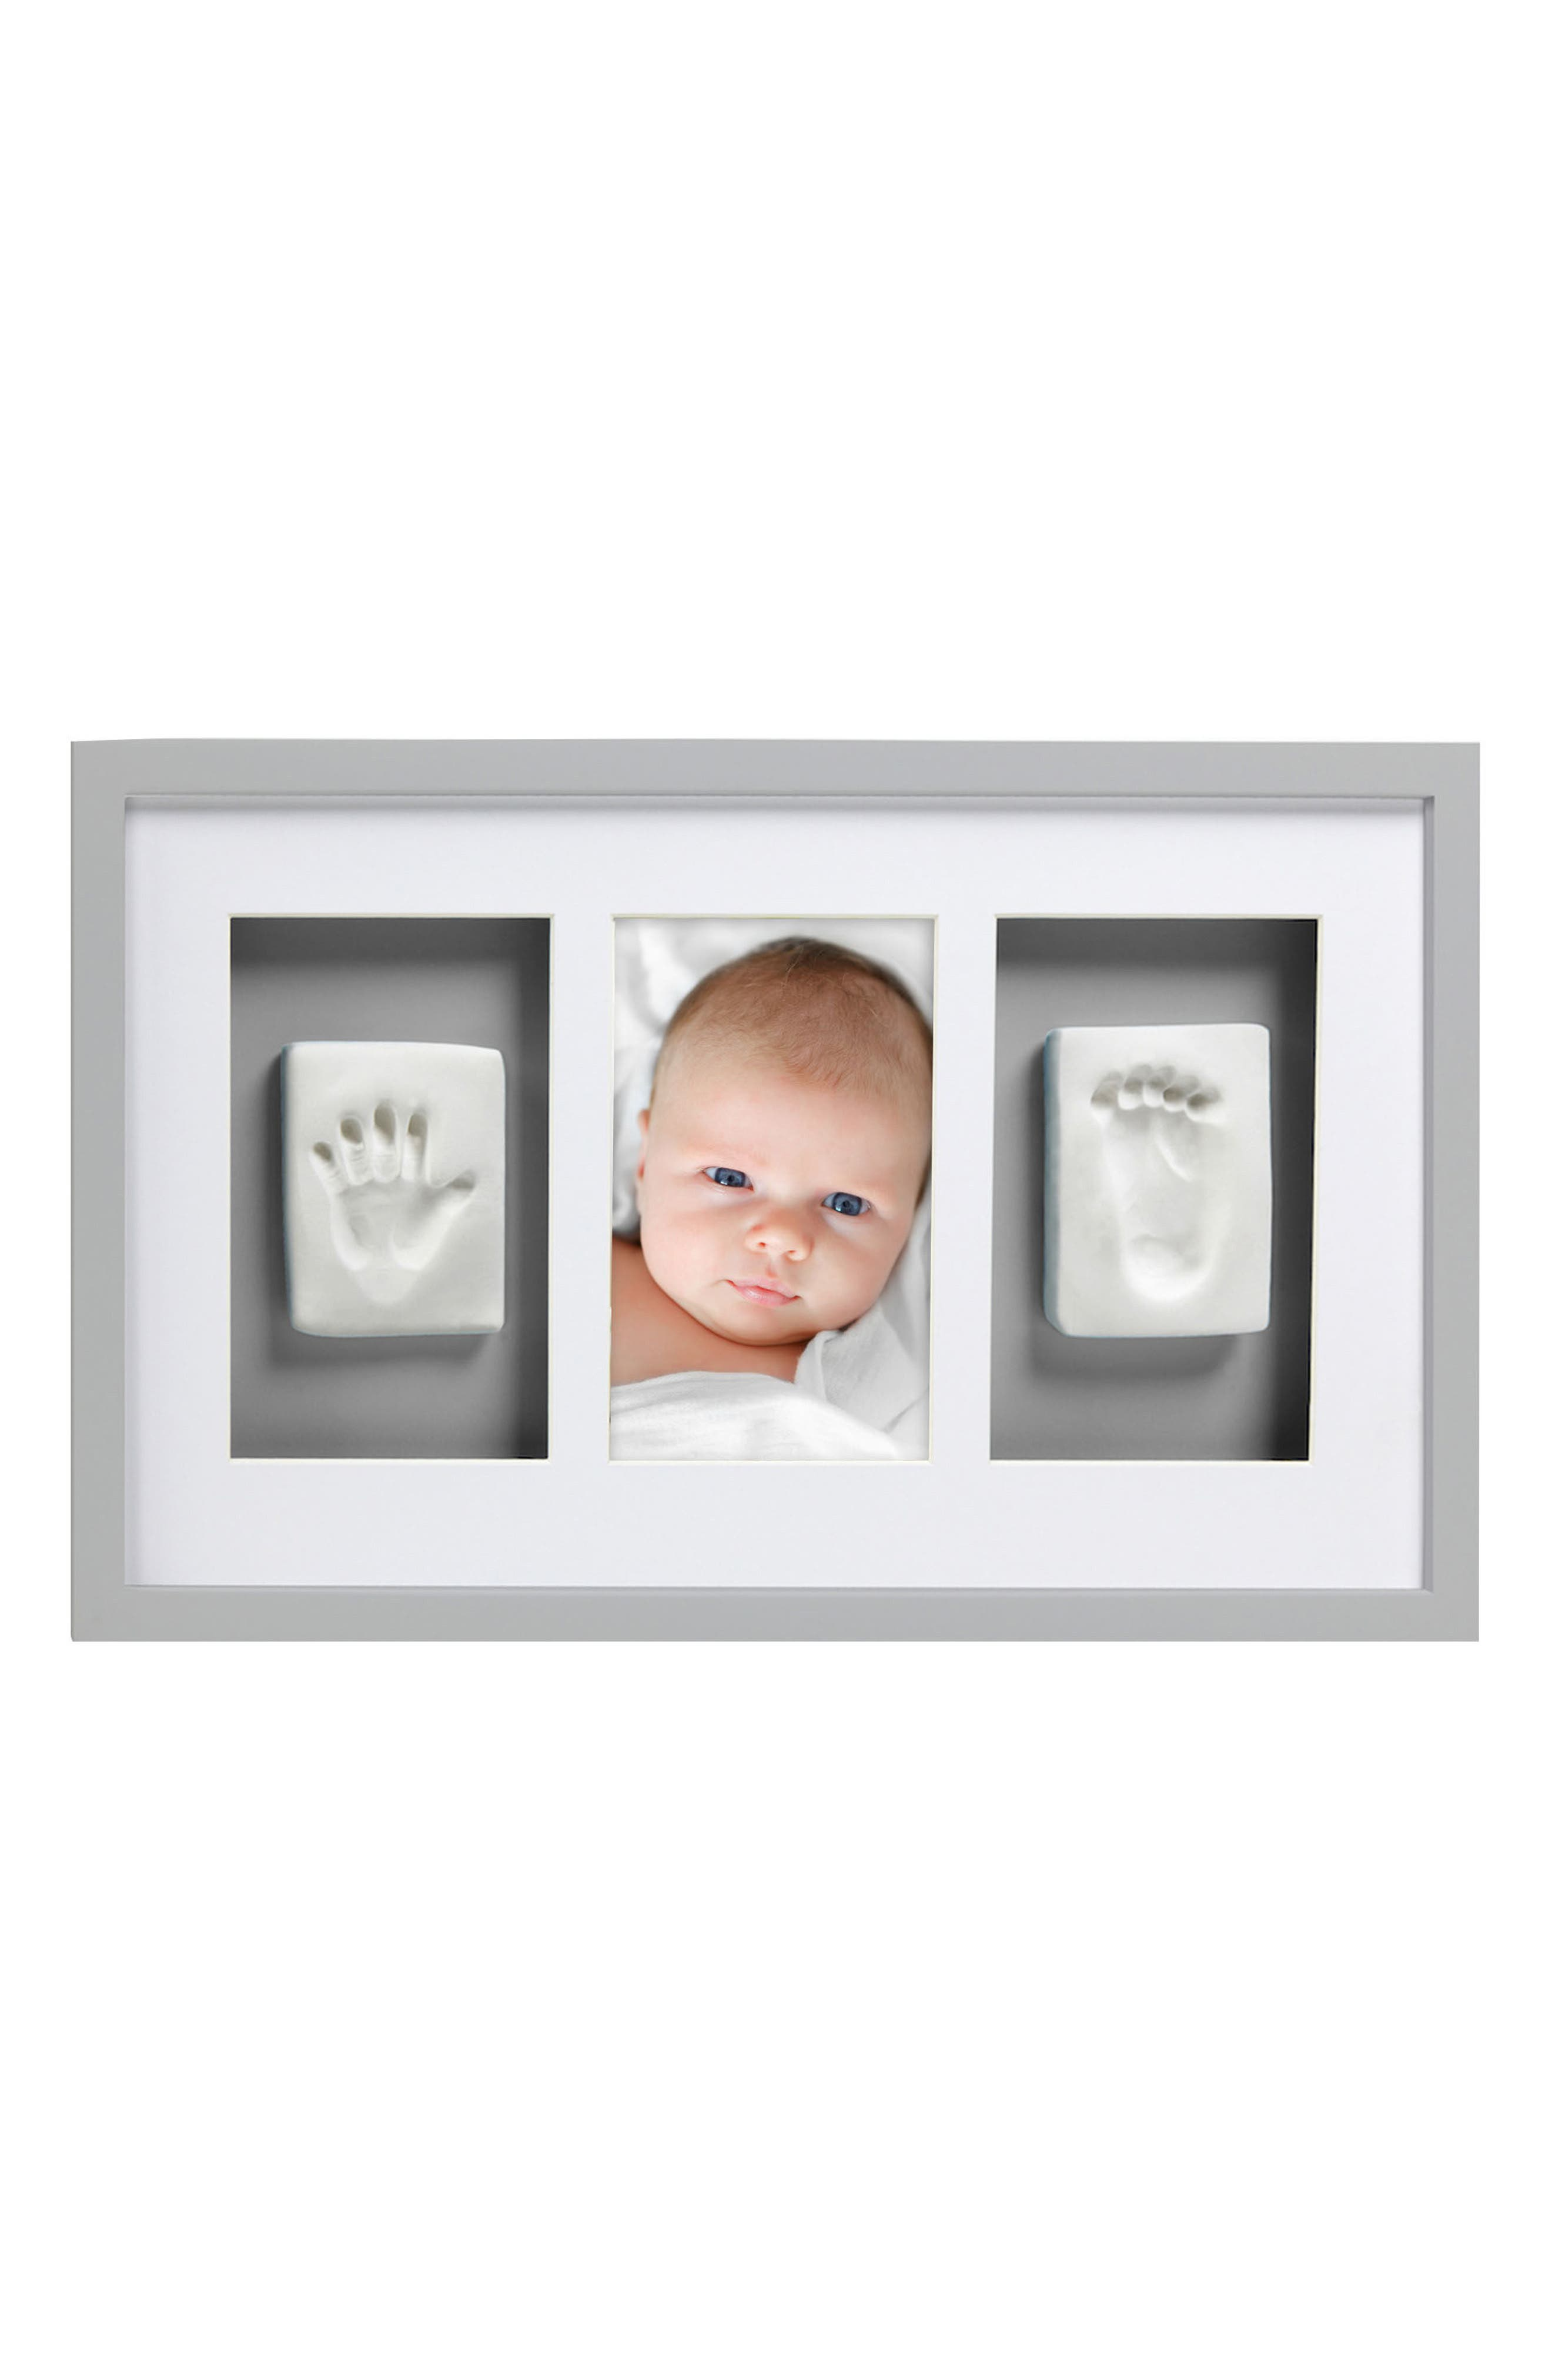 Main Image - Pearhead Babyprints Deluxe Wall Frame Kit